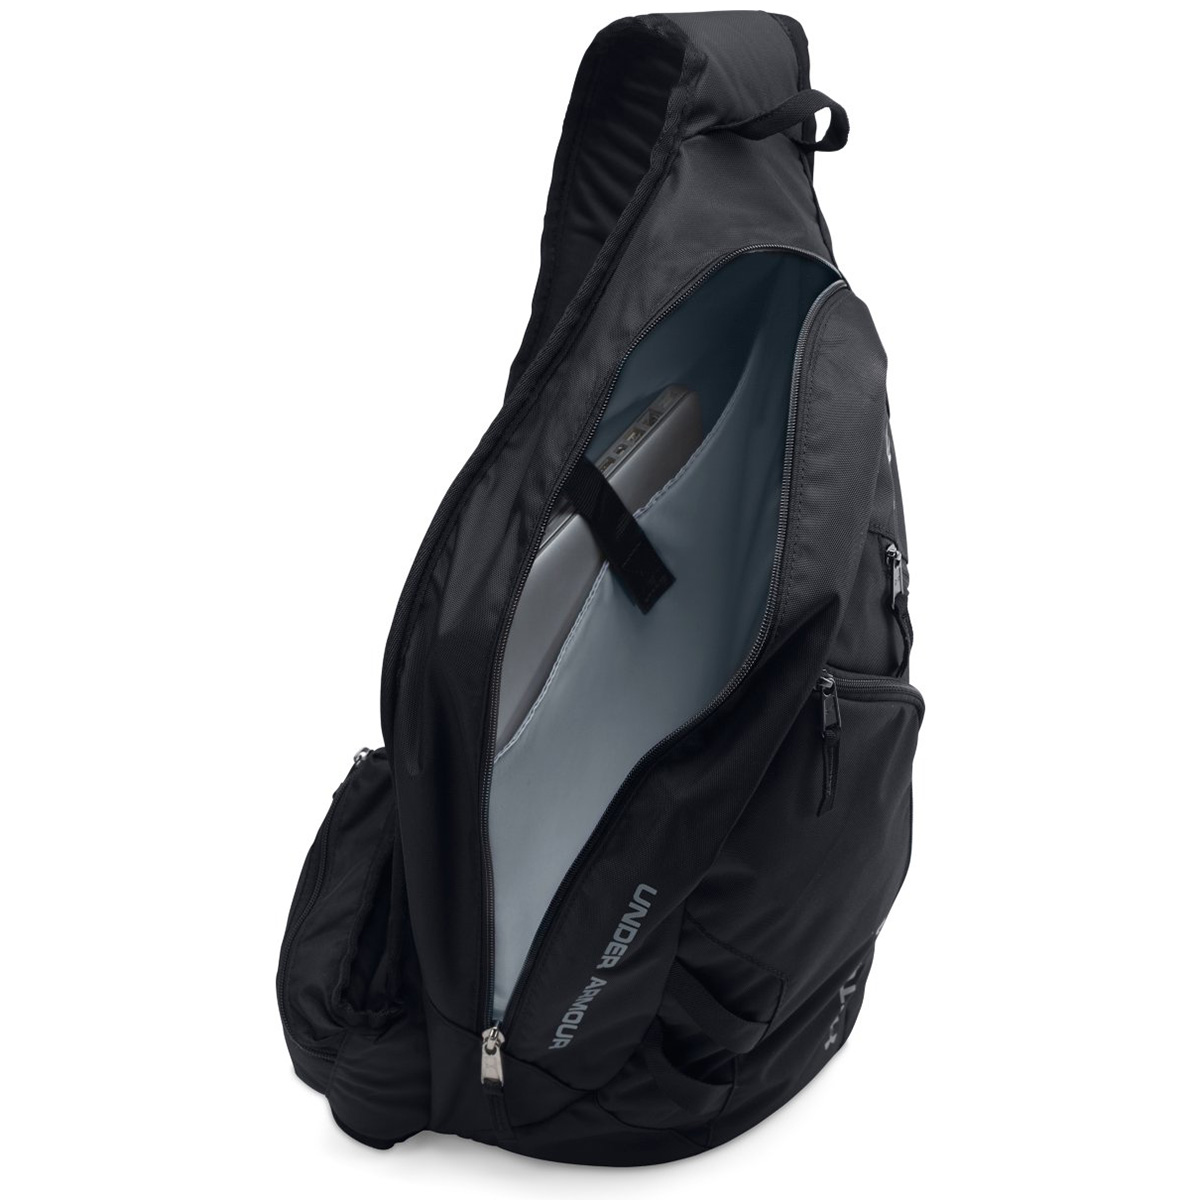 d8b62028d2 sling backpack under armour cheap > OFF41% The Largest Catalog Discounts